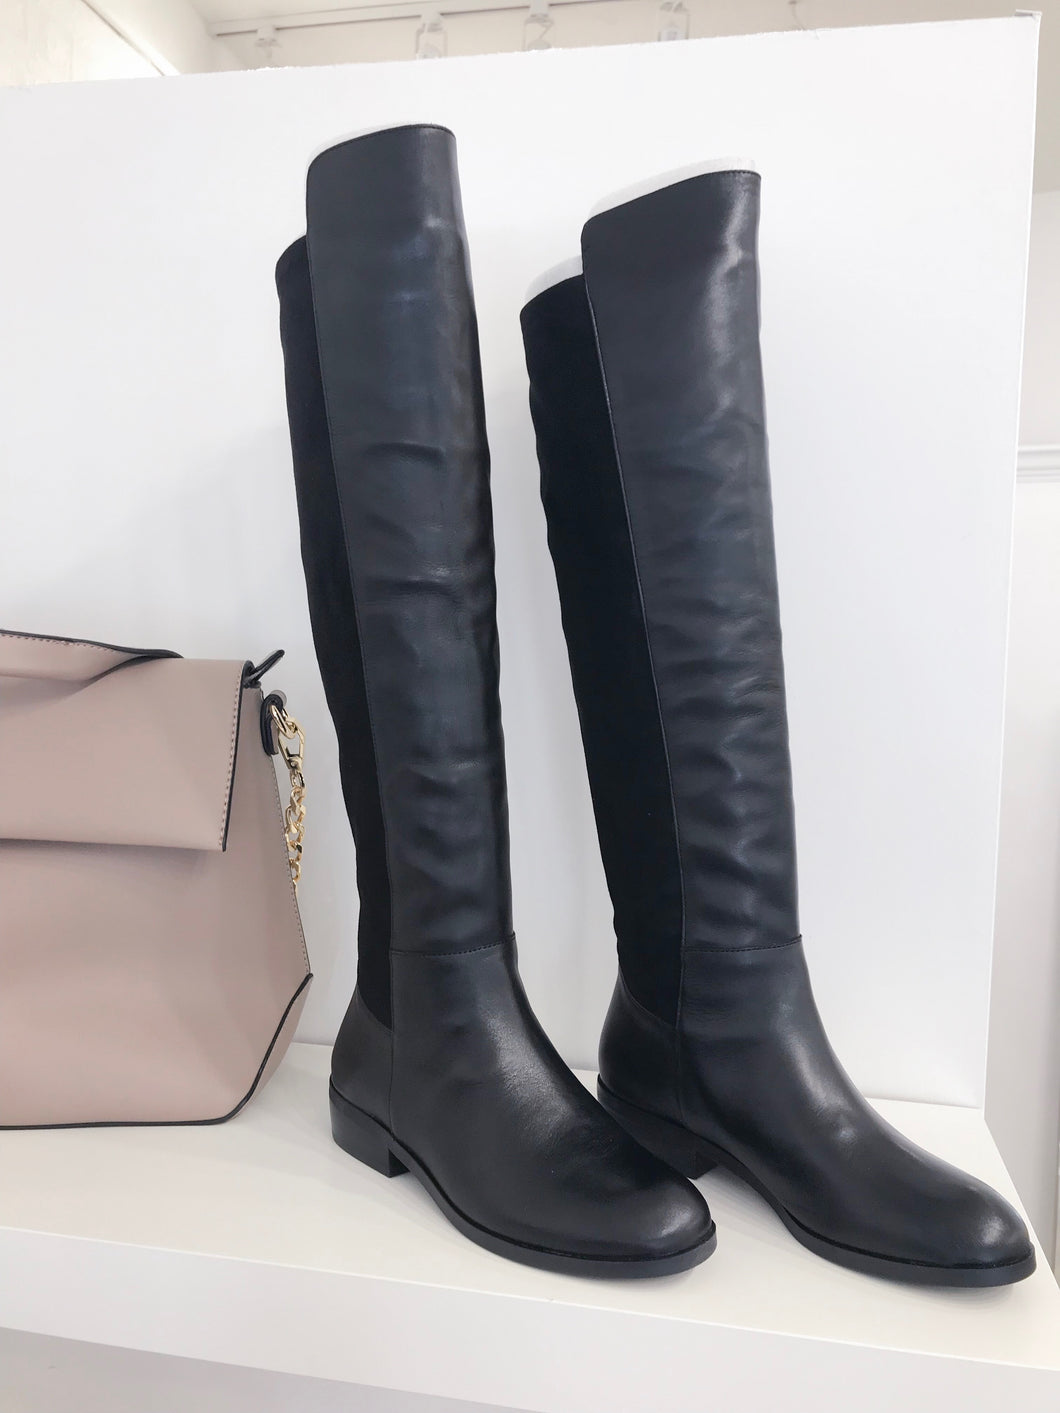 Calypso Tall Boot in Black Leather - FINAL SALE